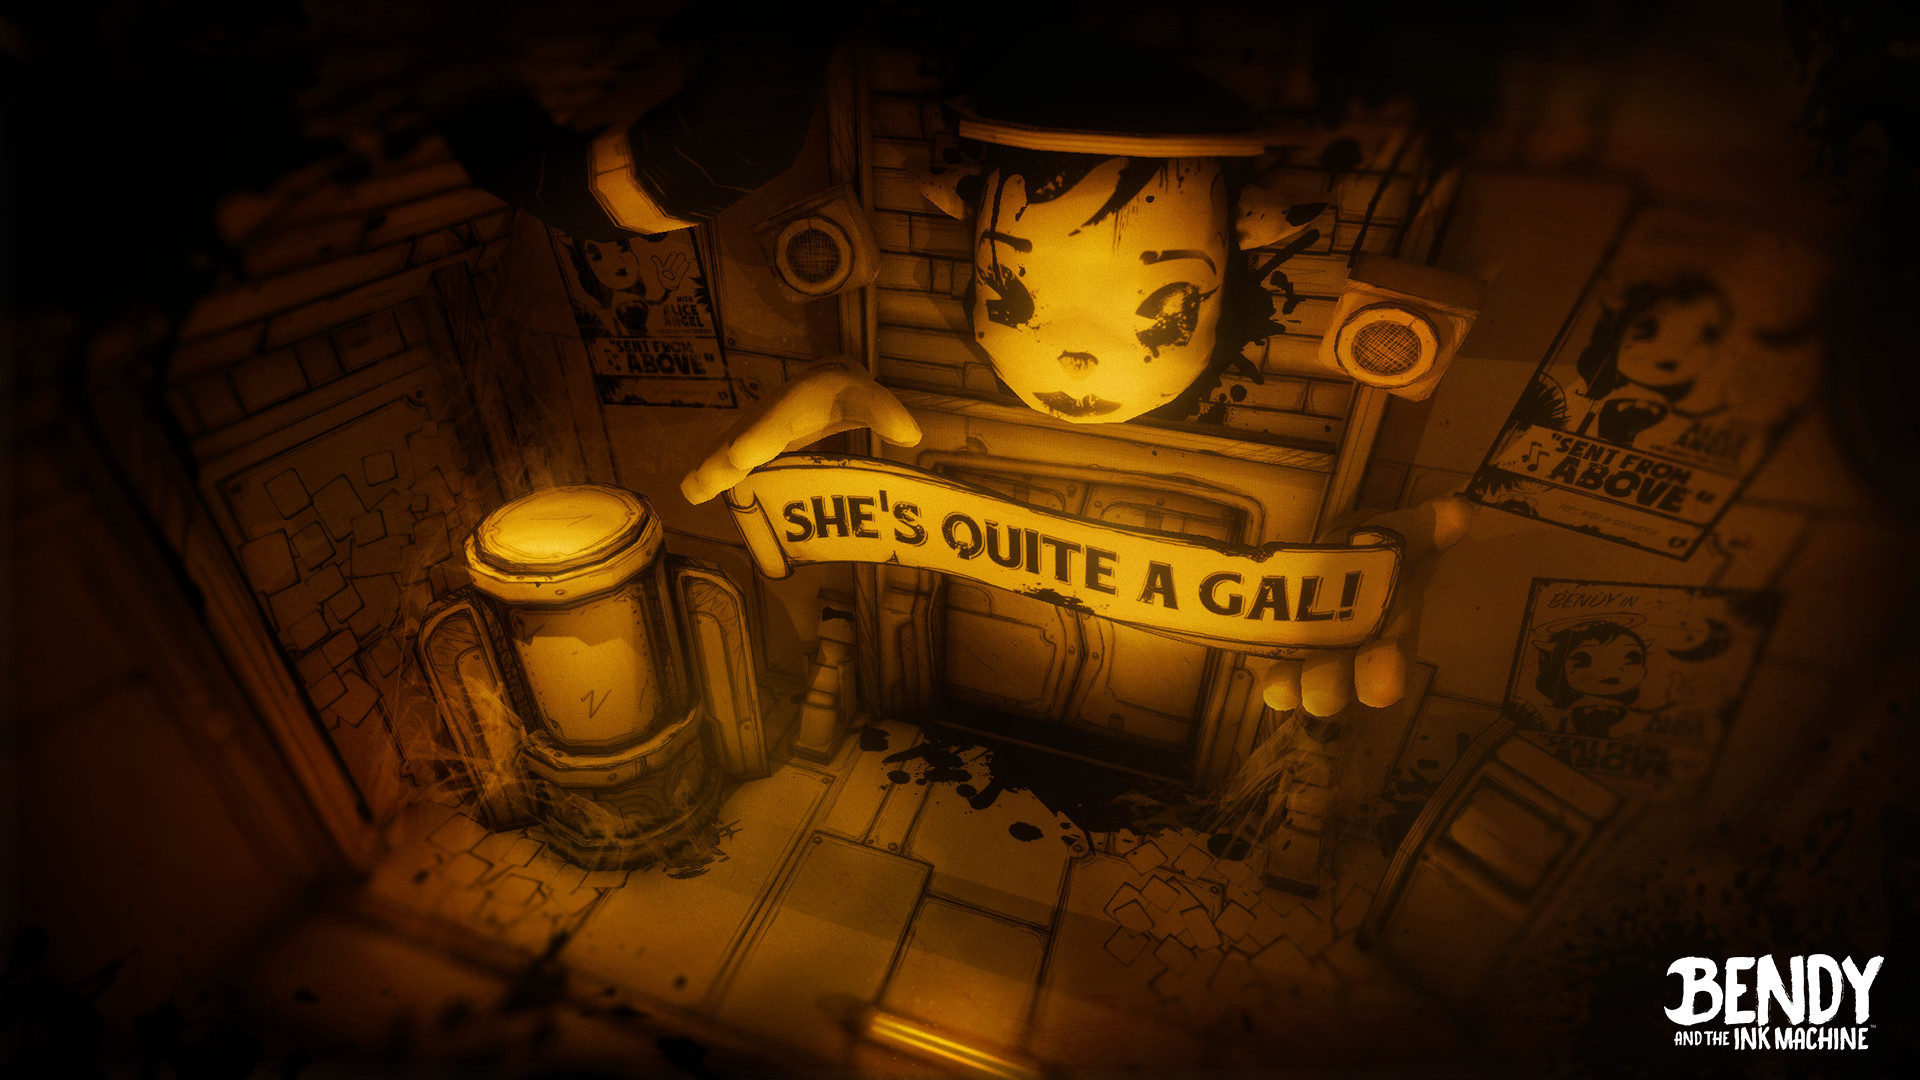 Bendy And The Ink Machine Chapter 3 2017 Promotional Art